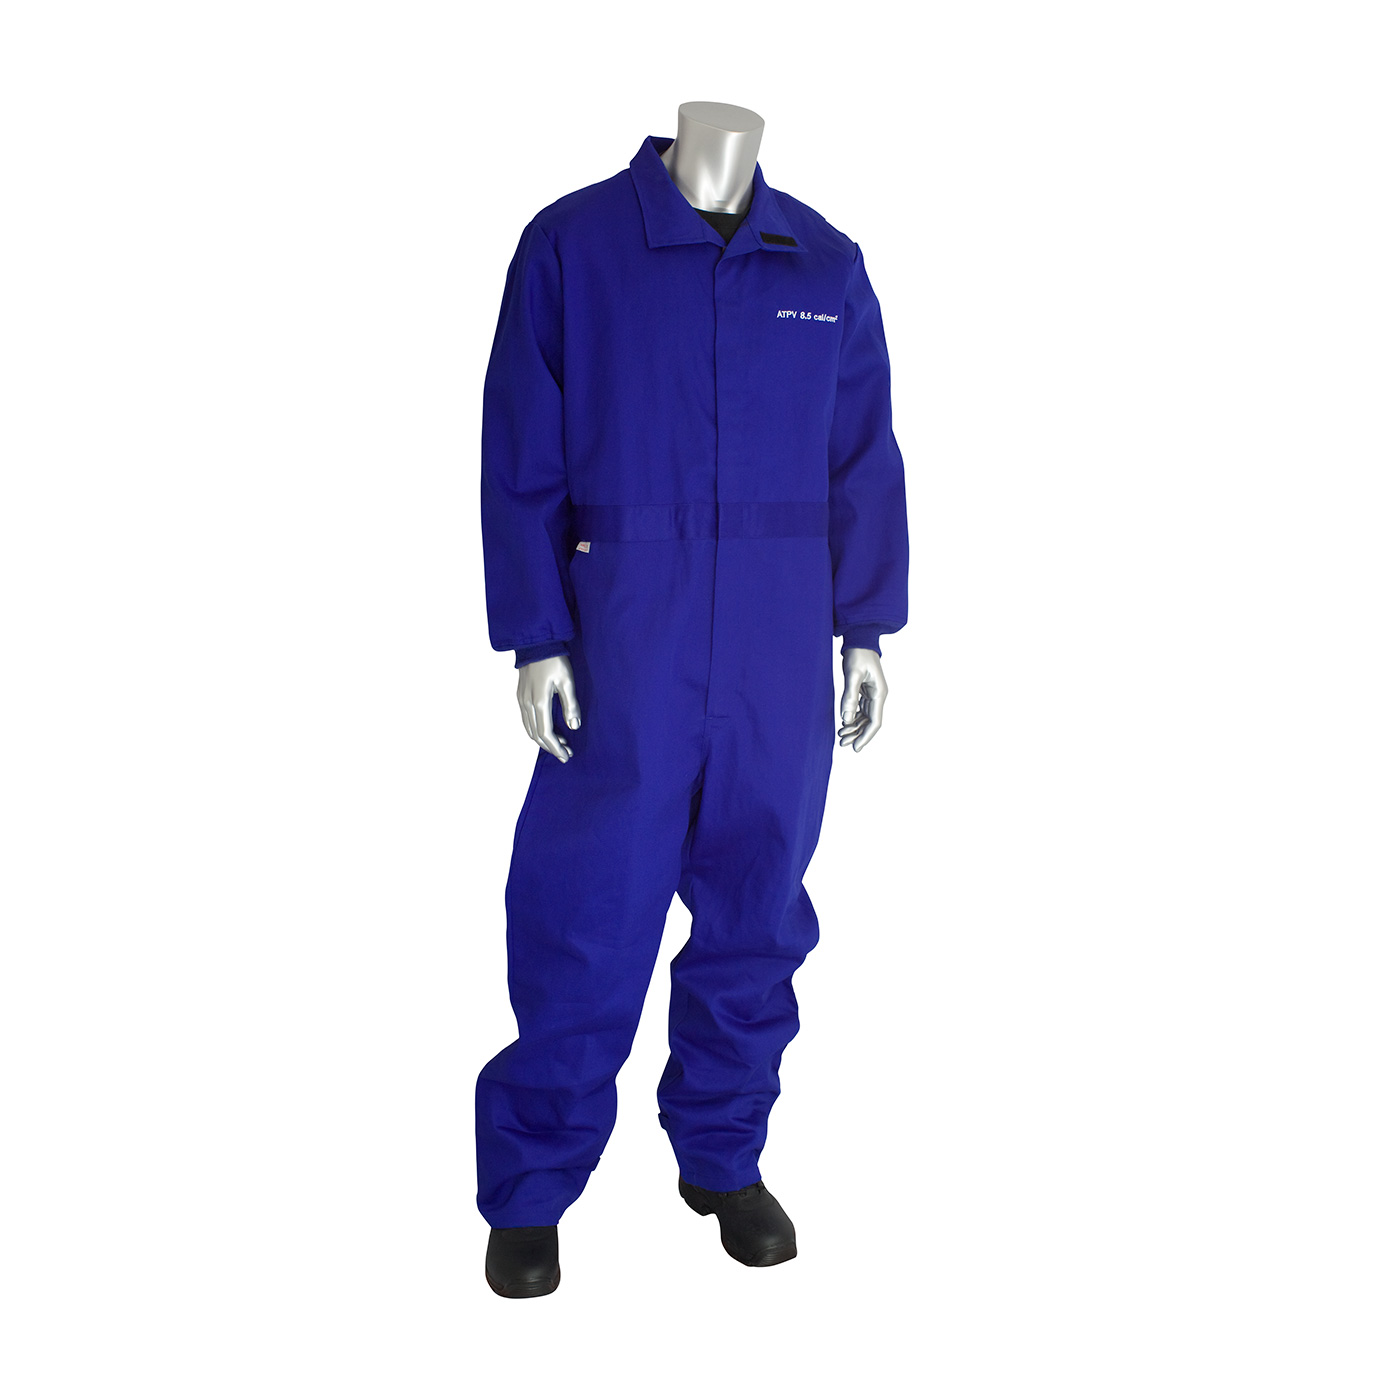 PIP® AR/FR Dual Certified Coverall with Vented Back - 8 Cal/cm2 #9100-2120D